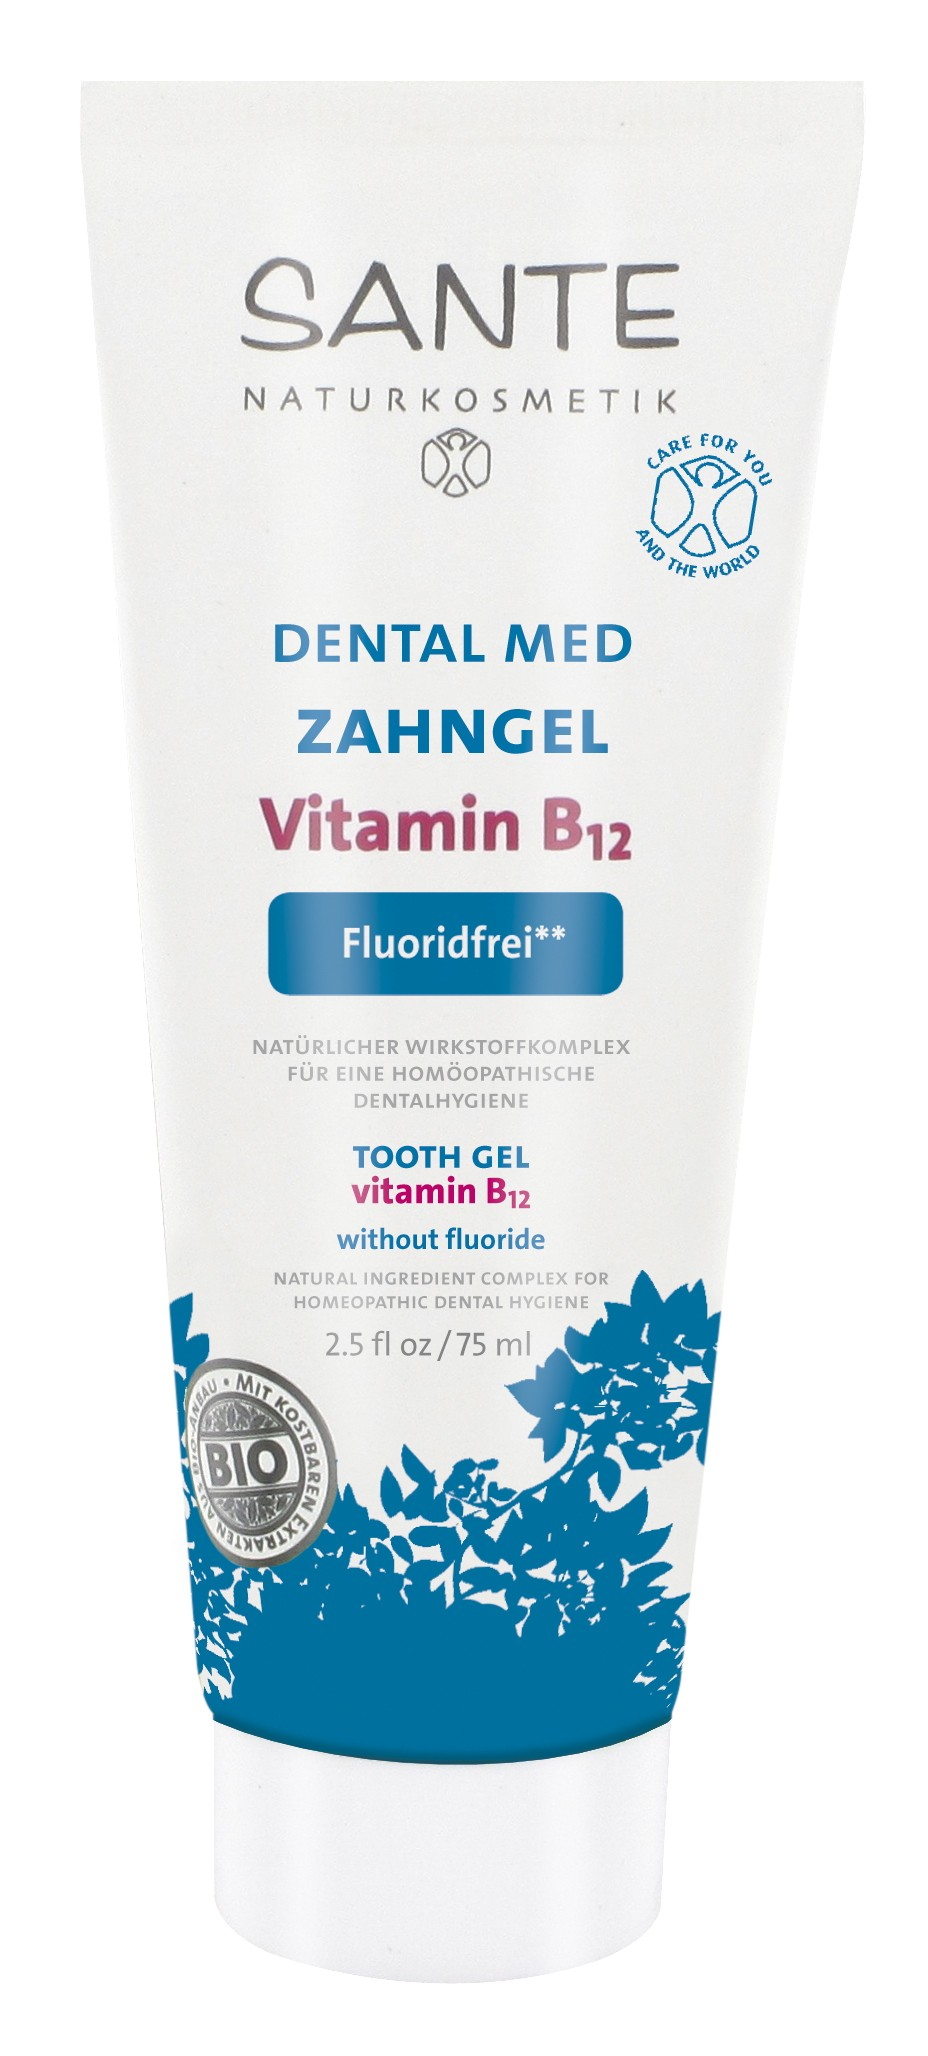 Xylit SANTE dental med Zahngel Vitamin B12